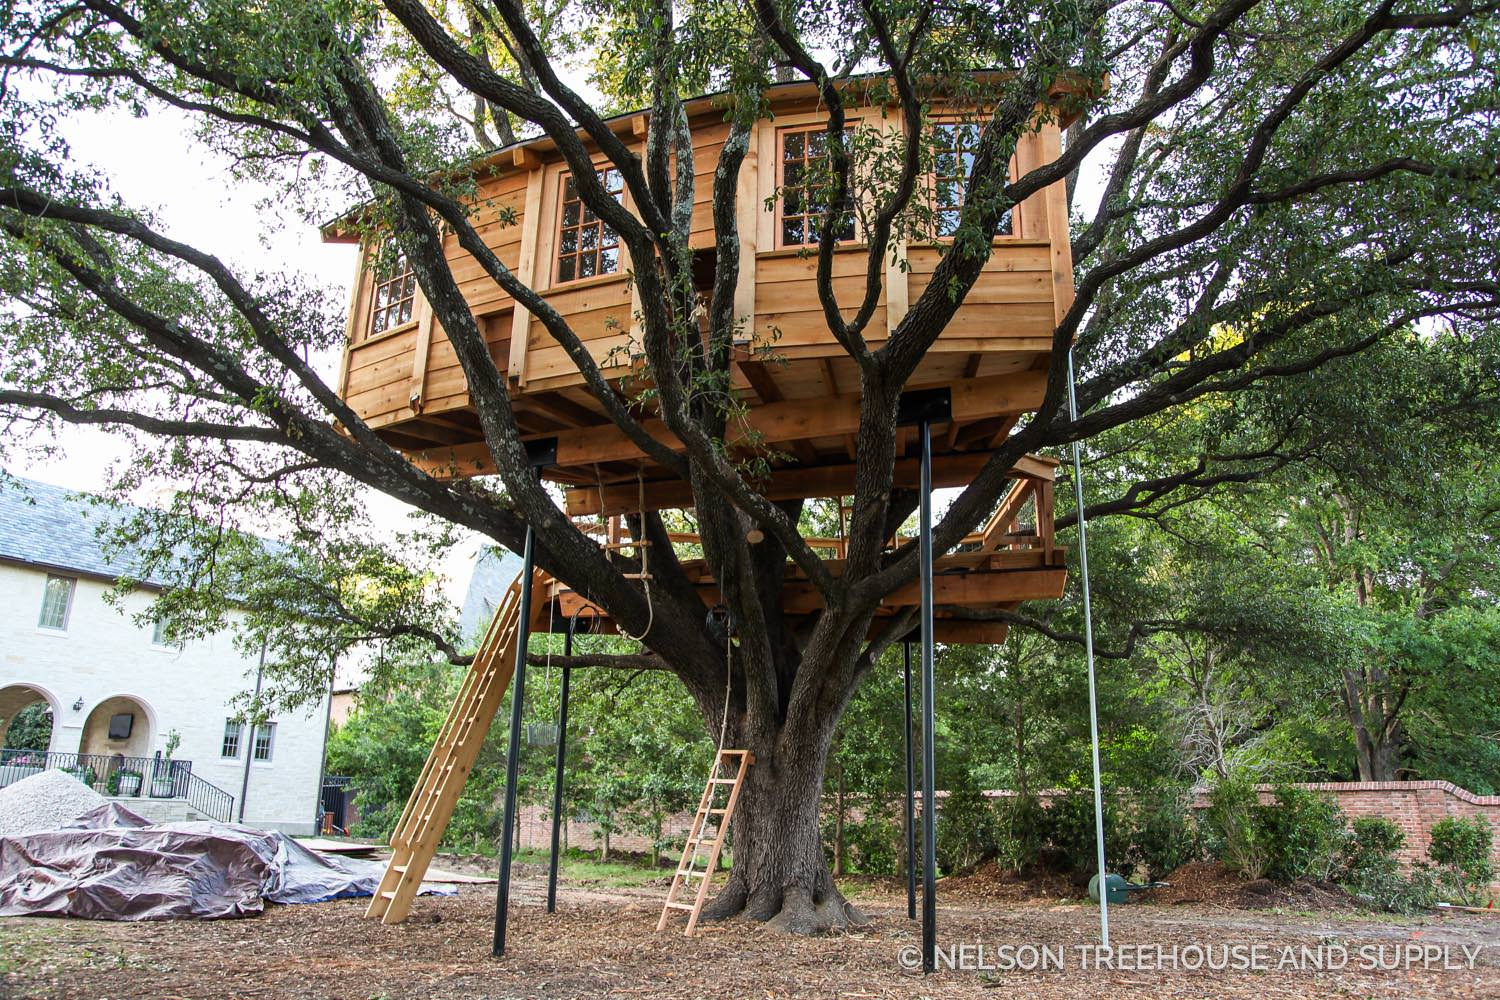 The NT&S crew built this treehouse organically, without prefabrication in the shop.